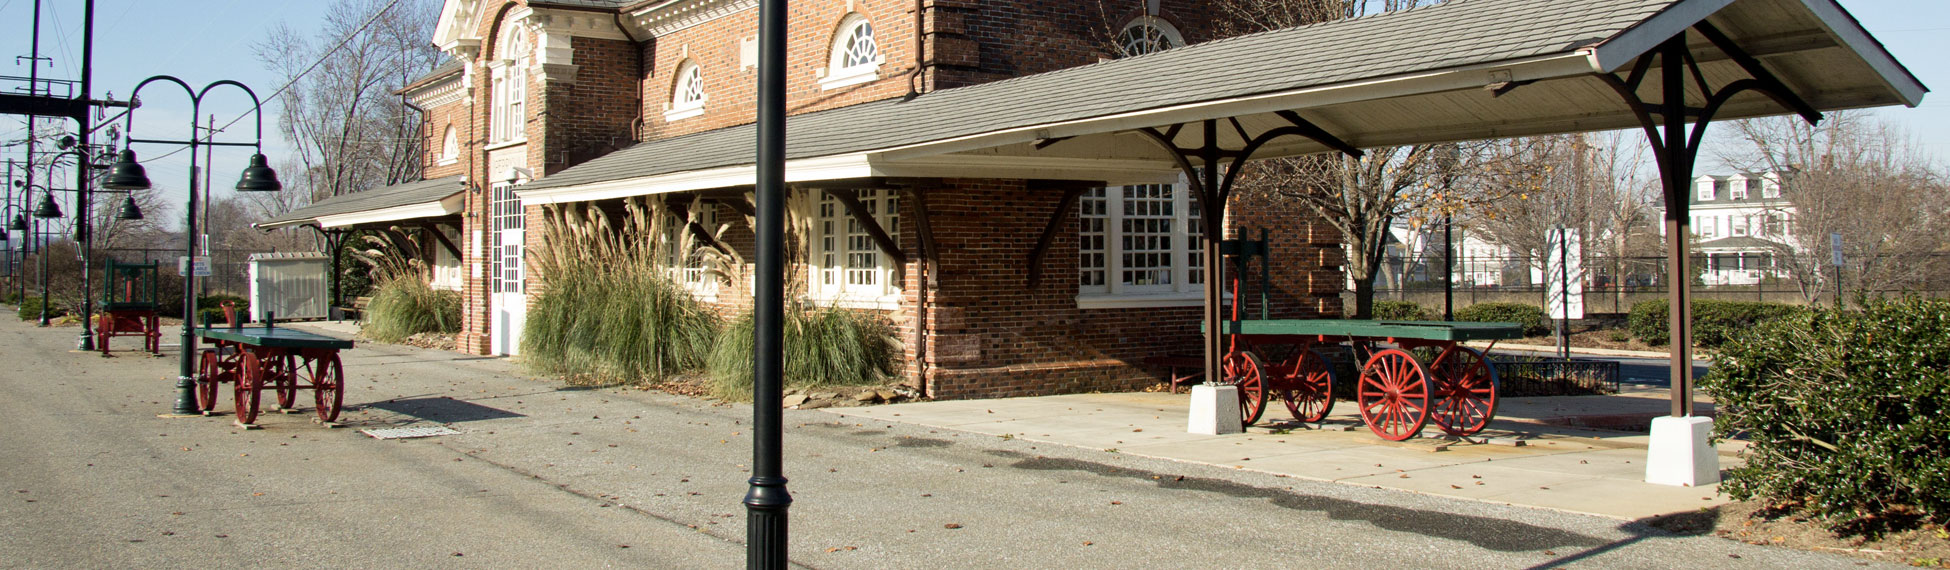 Close-up photo of corner of train station building with old metal cart in photo